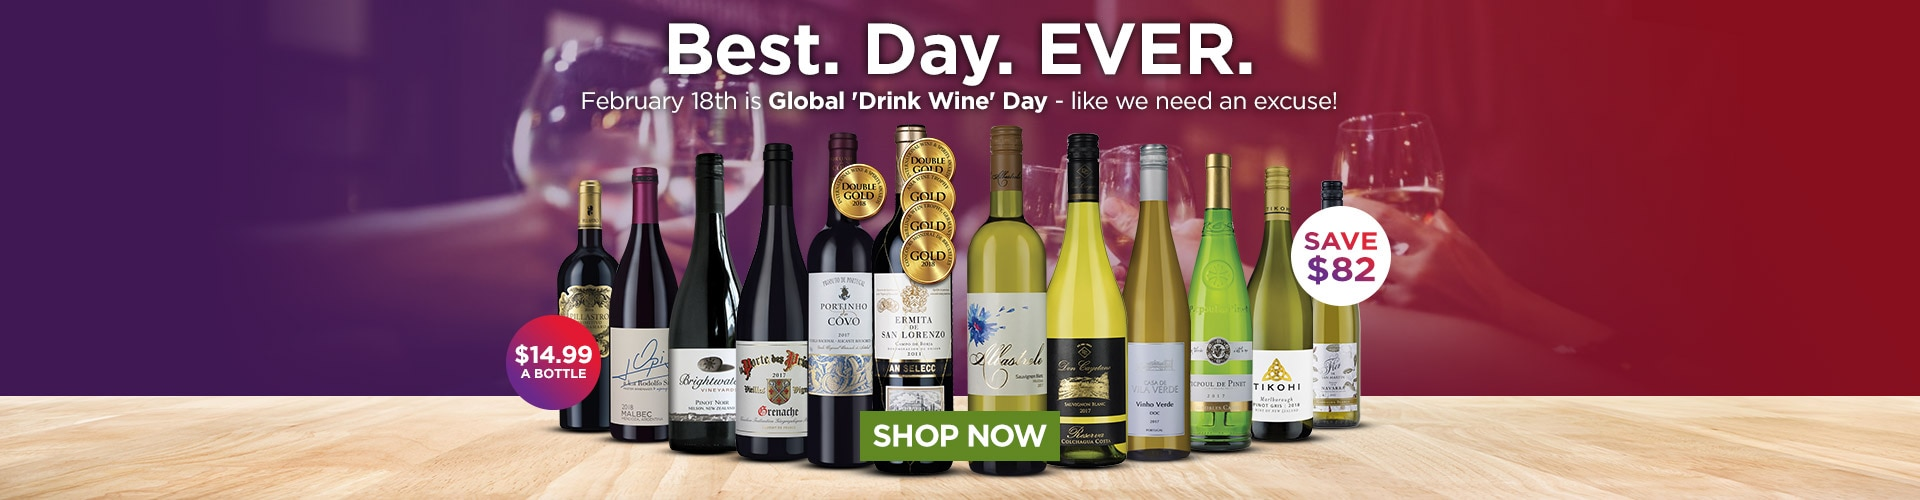 Feb 18th is Global Drink Wine Day - like we need an excuse! Only $14.99 a bottle - SHOP NOW